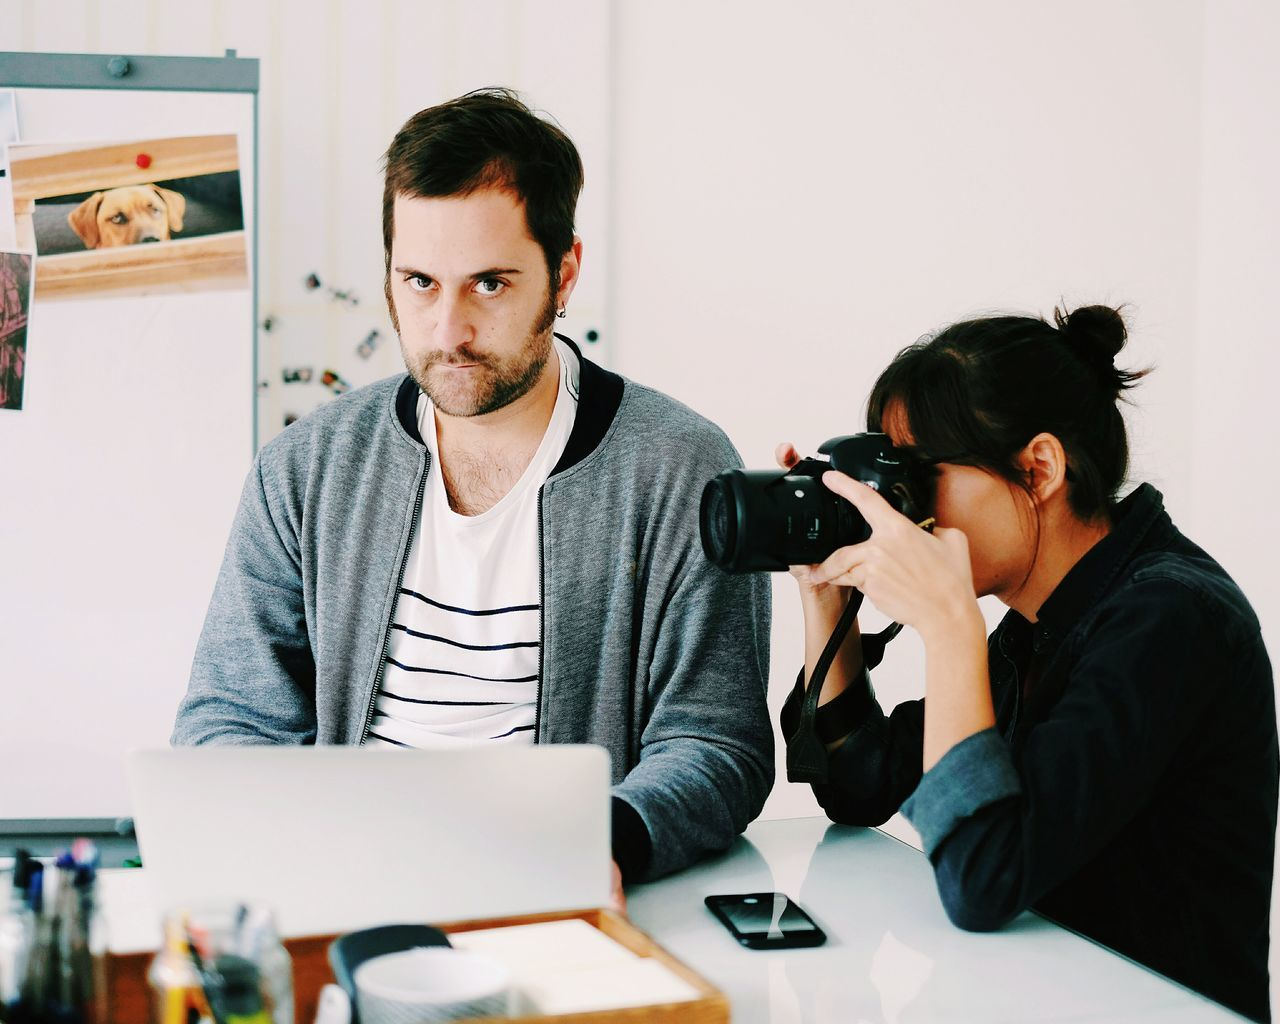 Just another day at the EyeEm office. Togetherness Lifestyles Technology Casual Clothing Holding Startup Camera Office Life At Eyeem